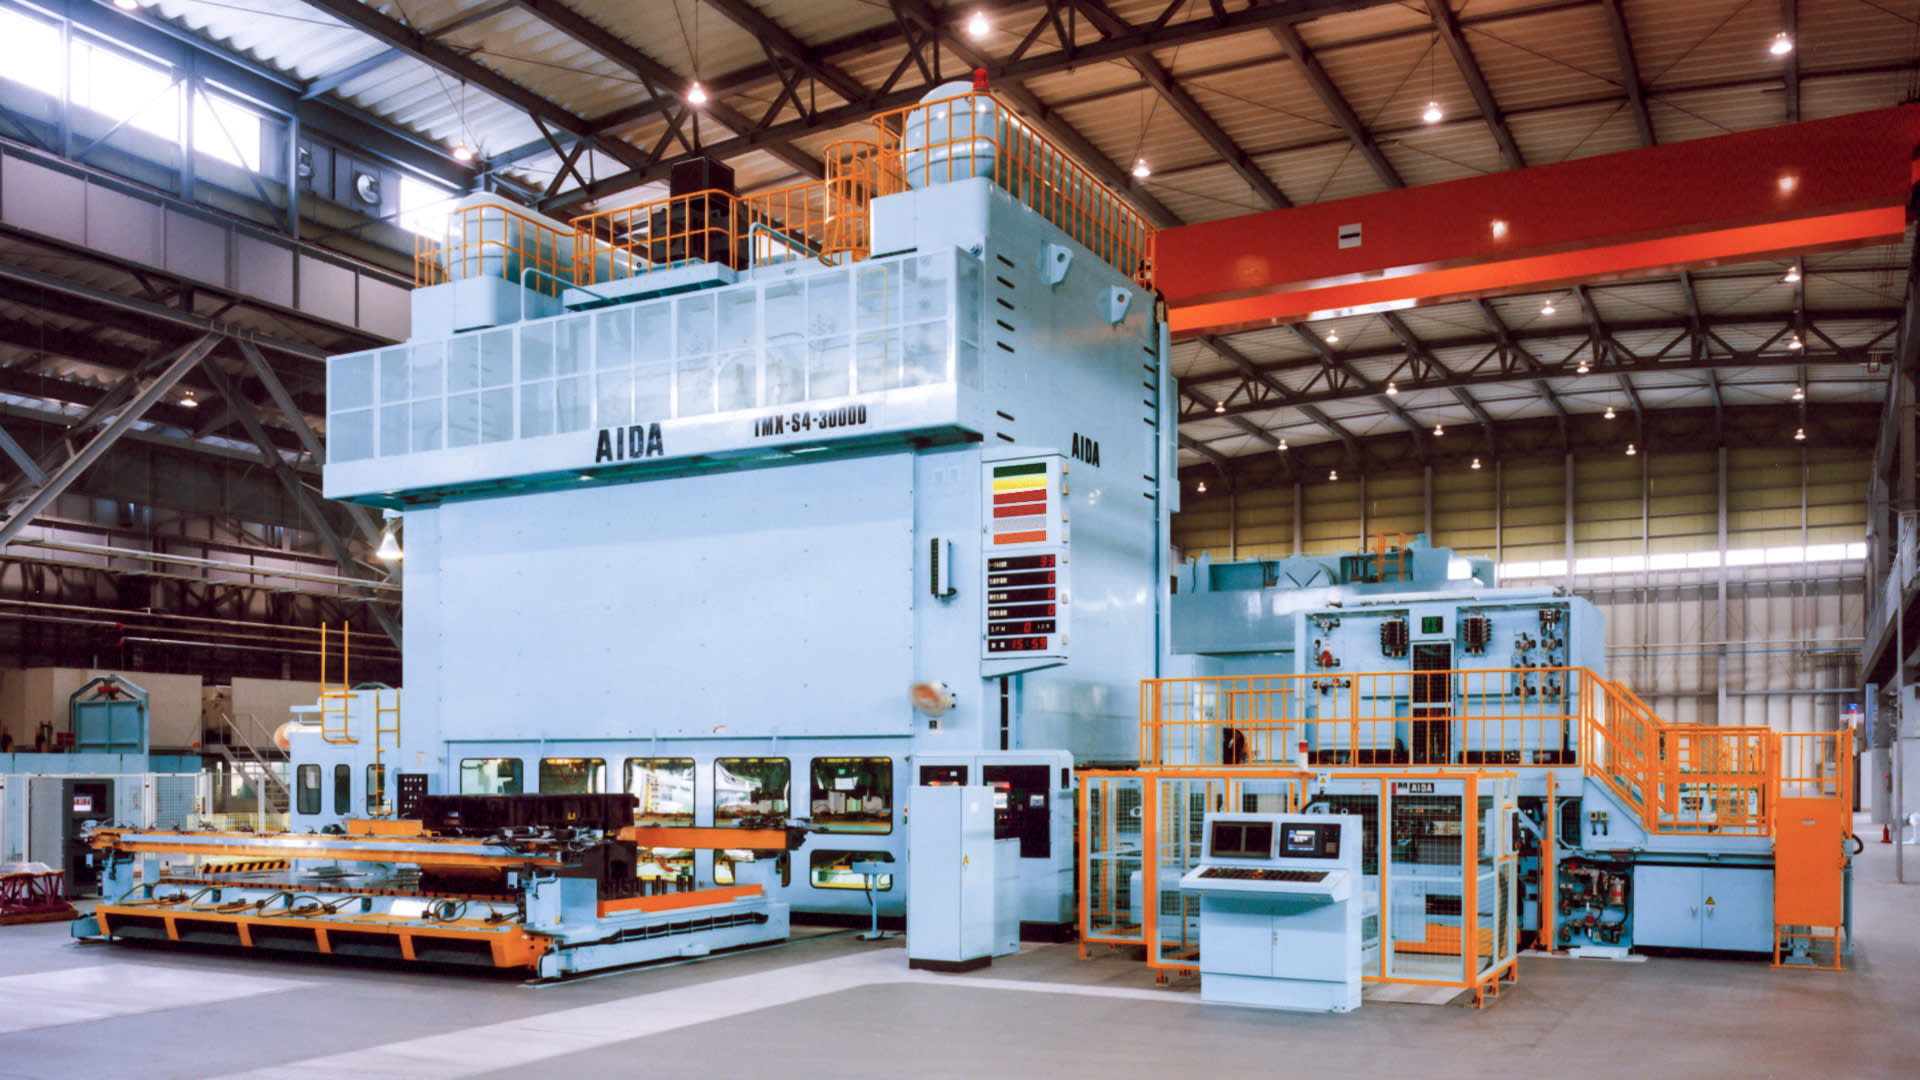 TMX-S4-30000, 3,000 Ton Mechanical Transfer Press